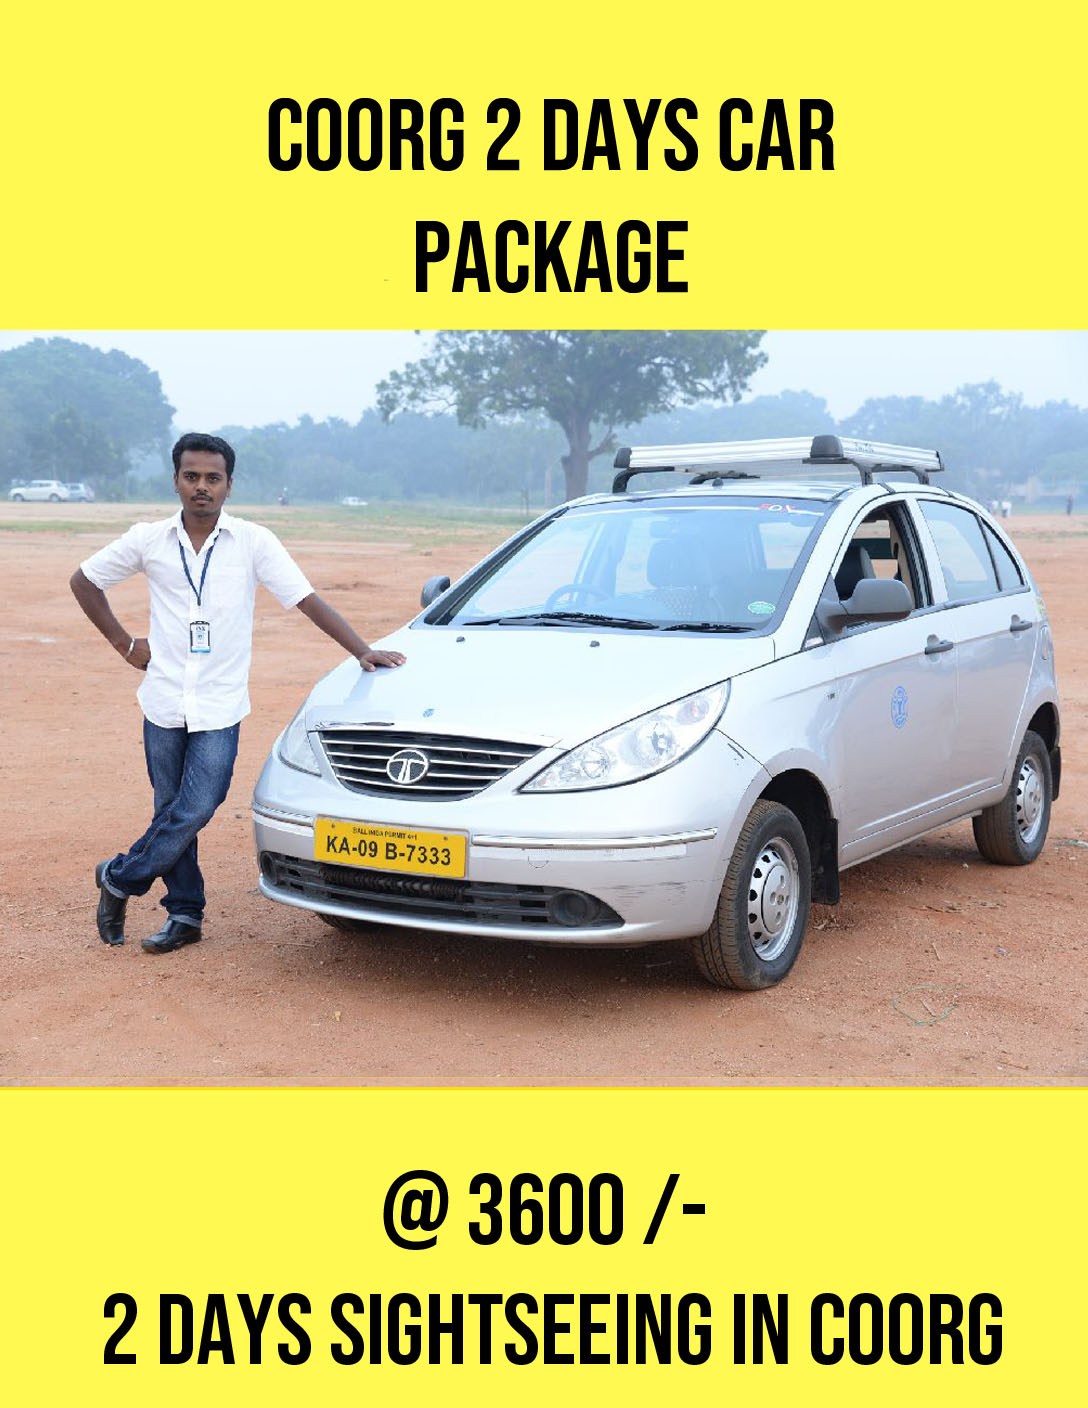 coorg-2-days-car-package